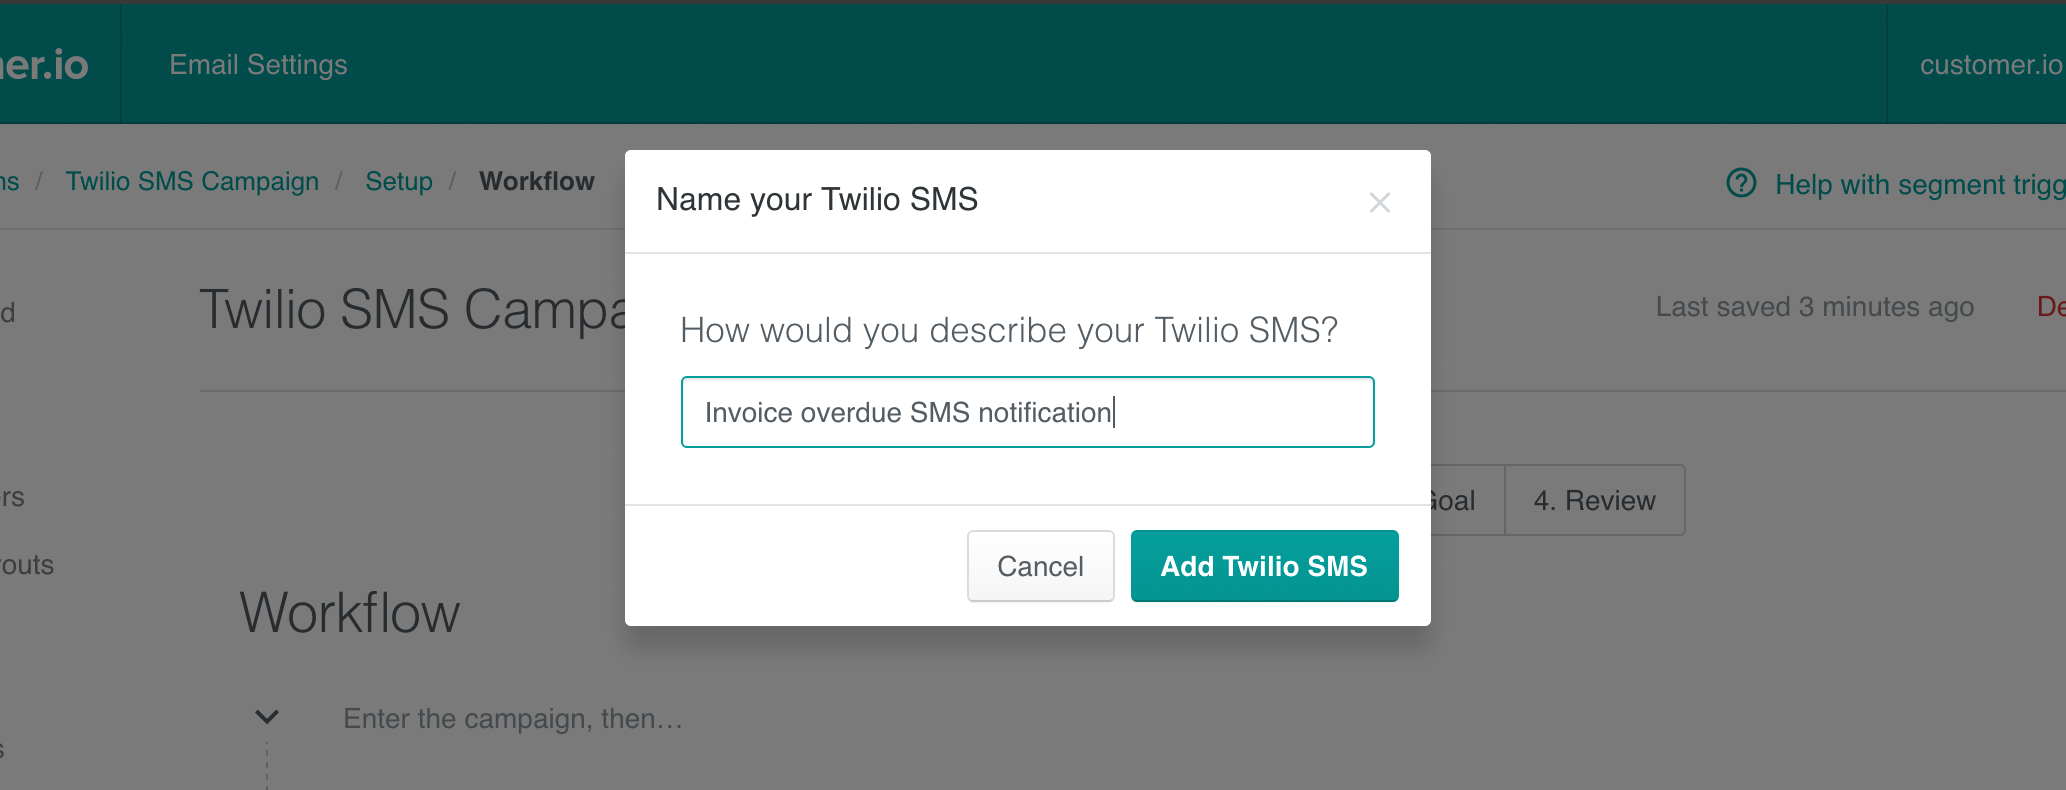 Twilio campaign - naming your SMS